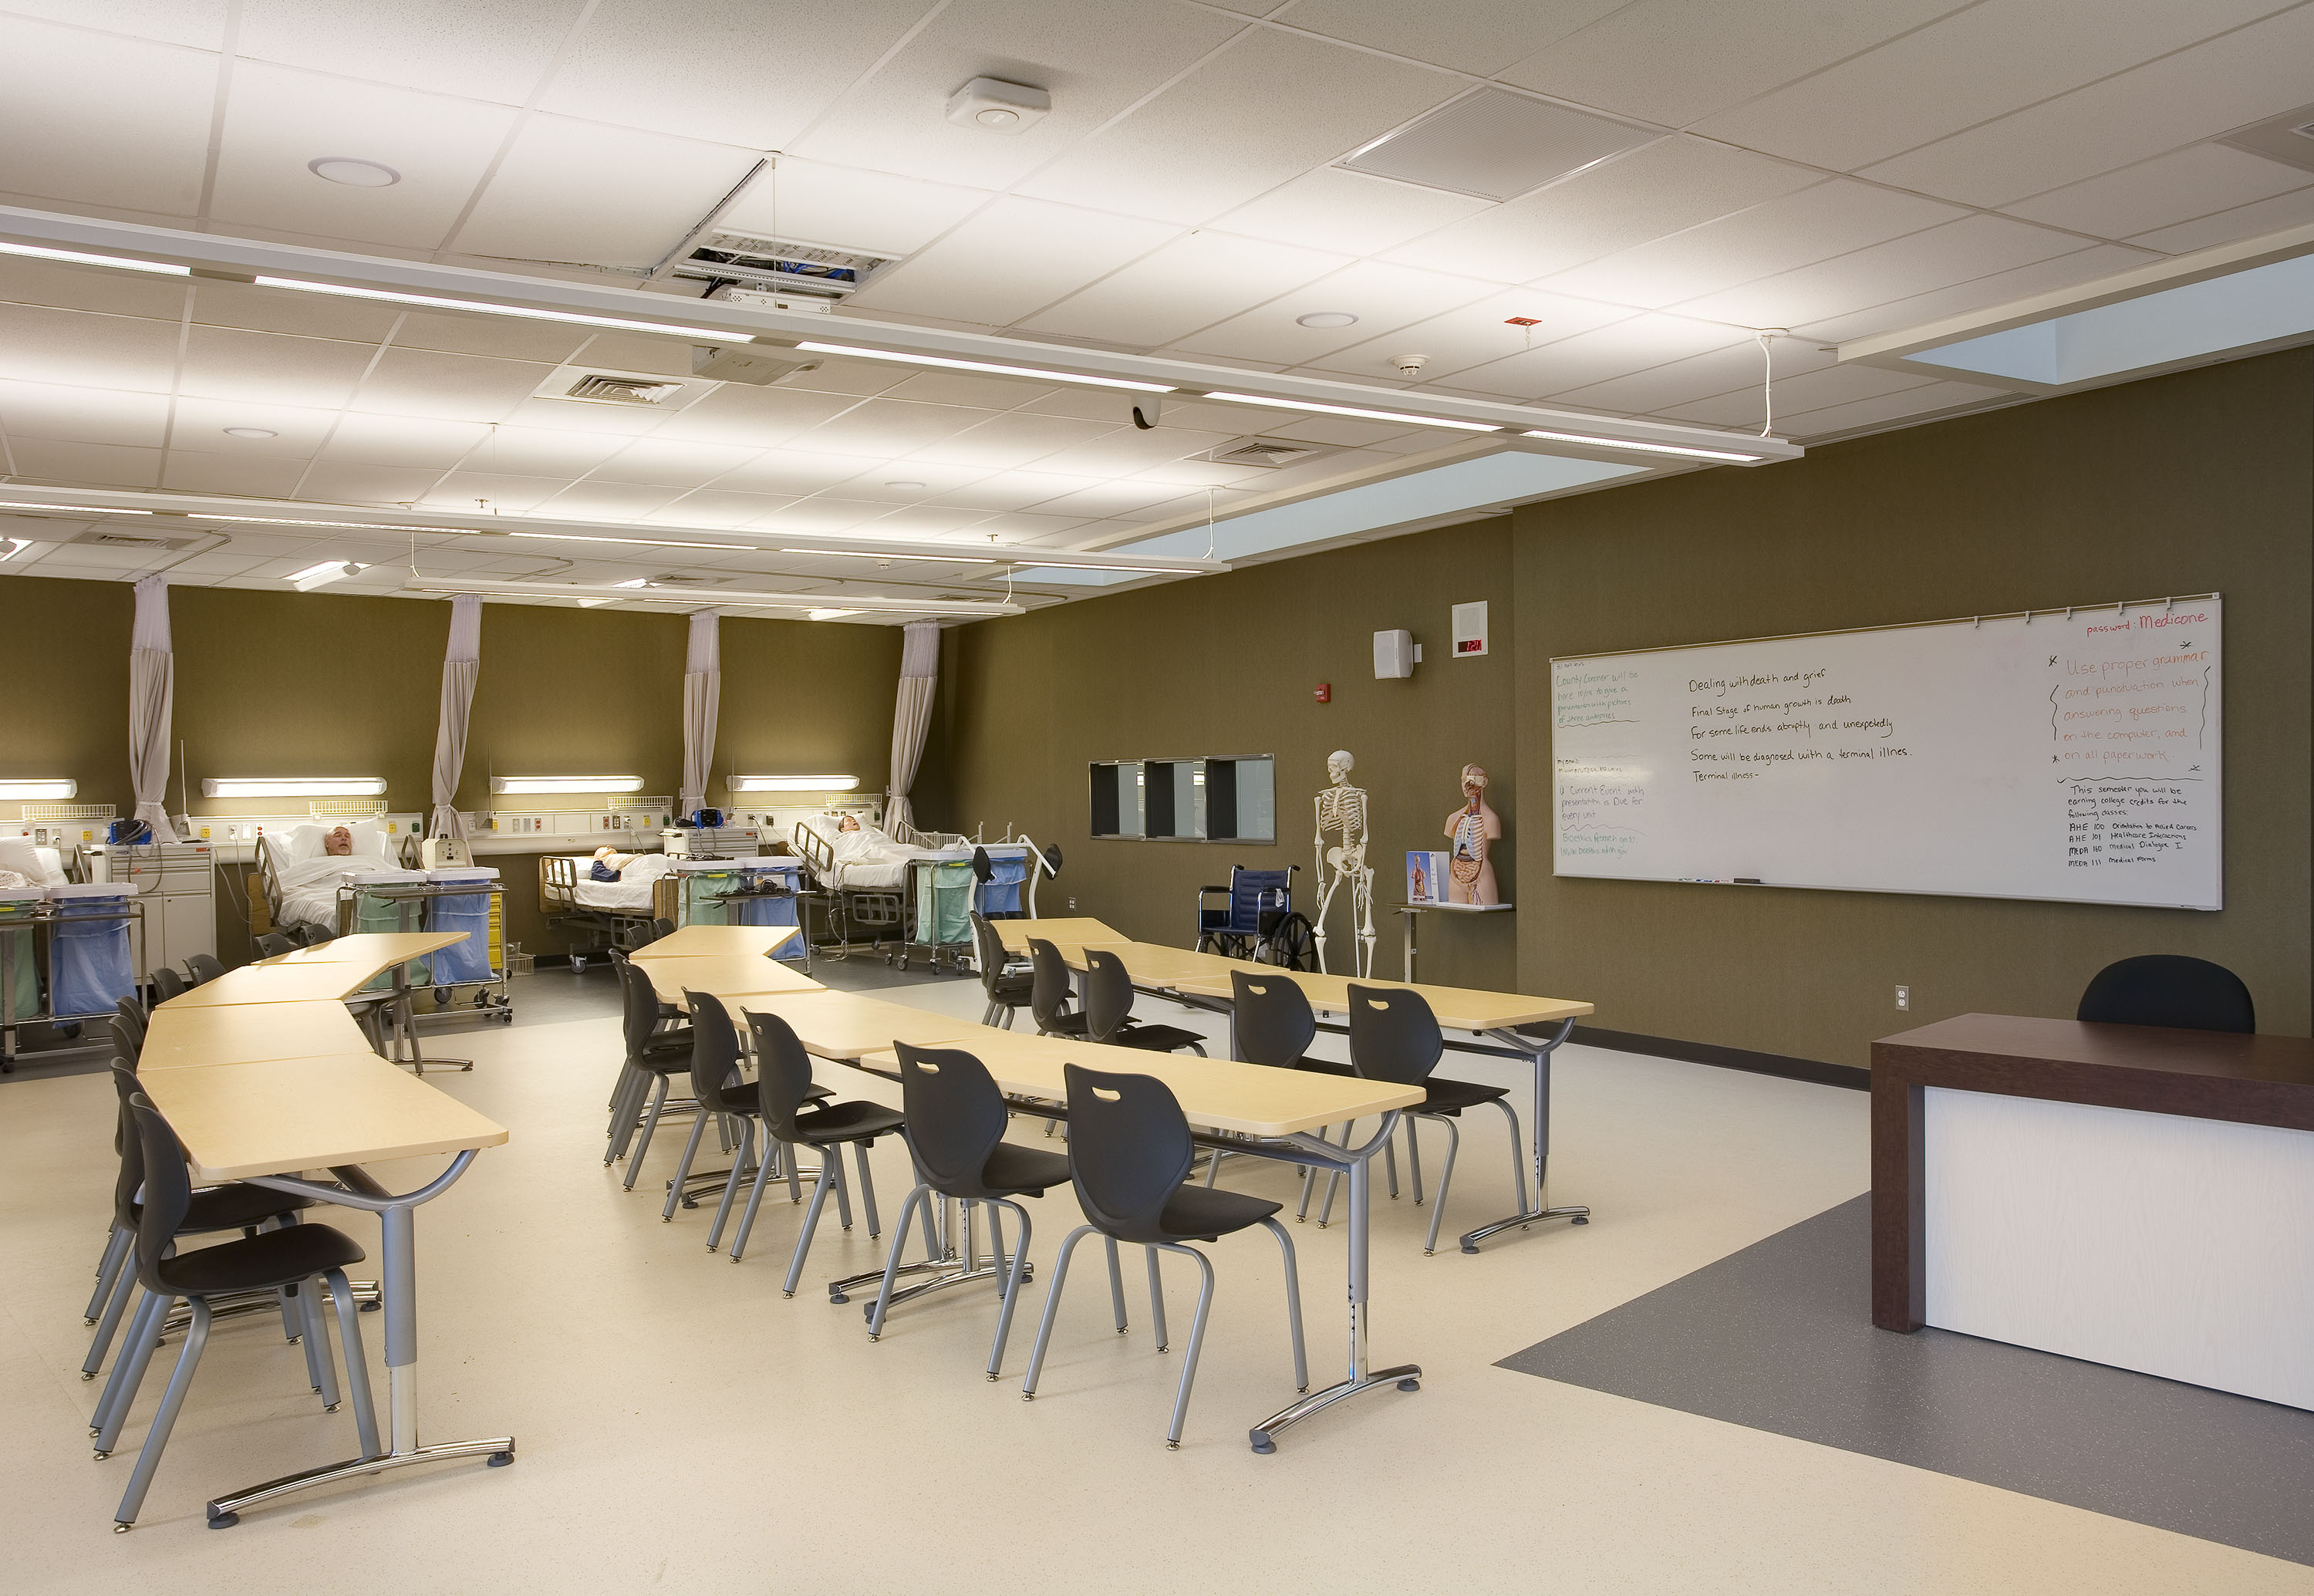 One of the medical training classrooms, including a student learning area and hospital beds.